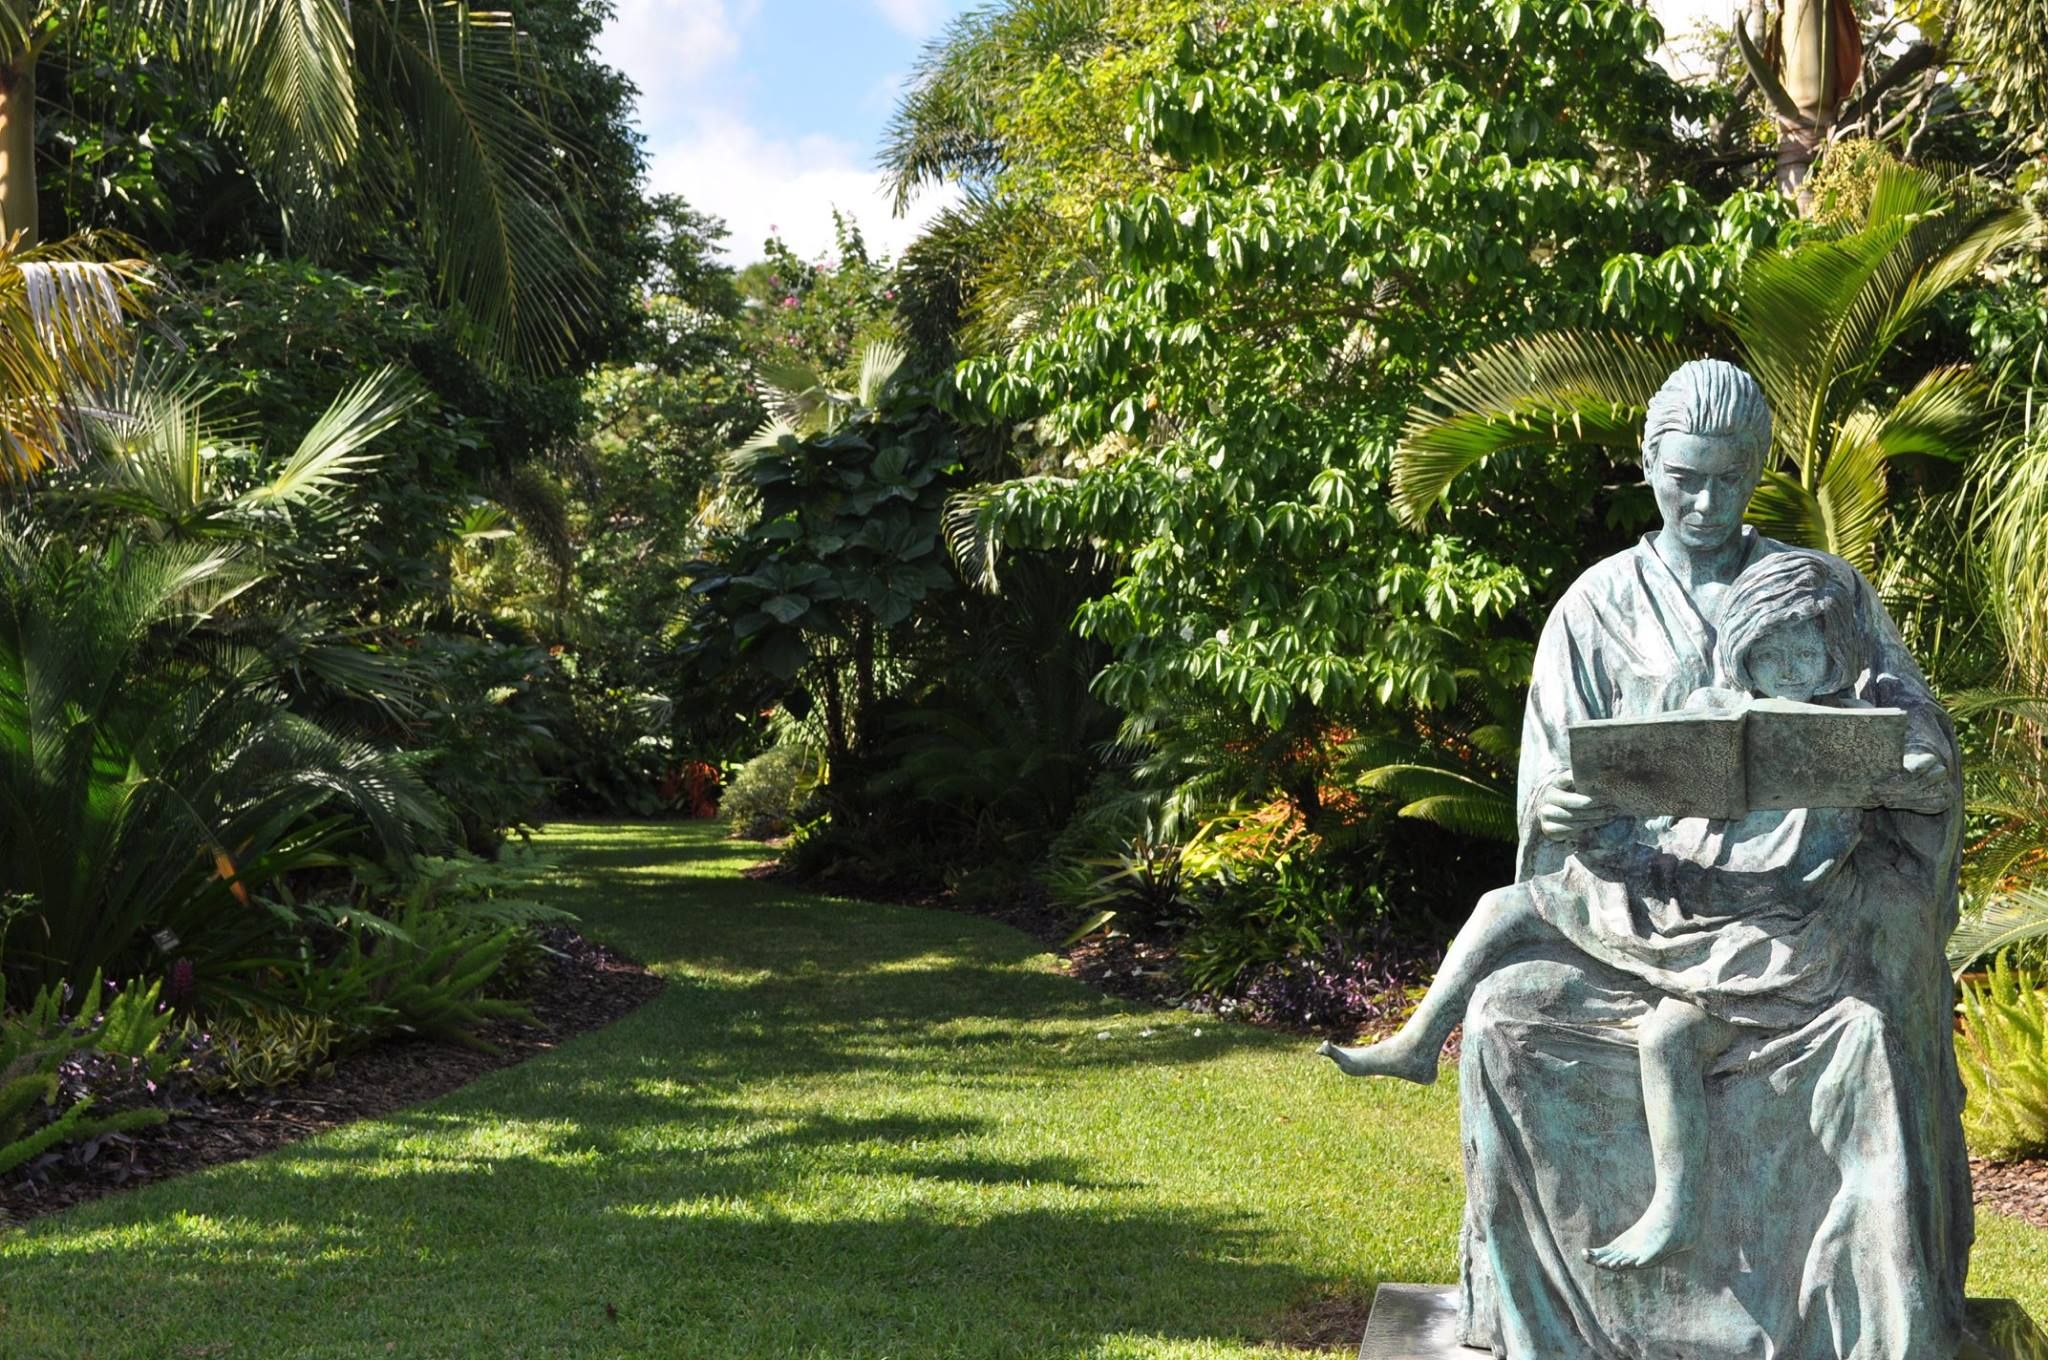 Mounts Botanical Garden Is An Oasis In The Heart Of The Palm Beaches.  Mounts Botanical Garden Displays Tropical And Subtropical Plants From  Around The World